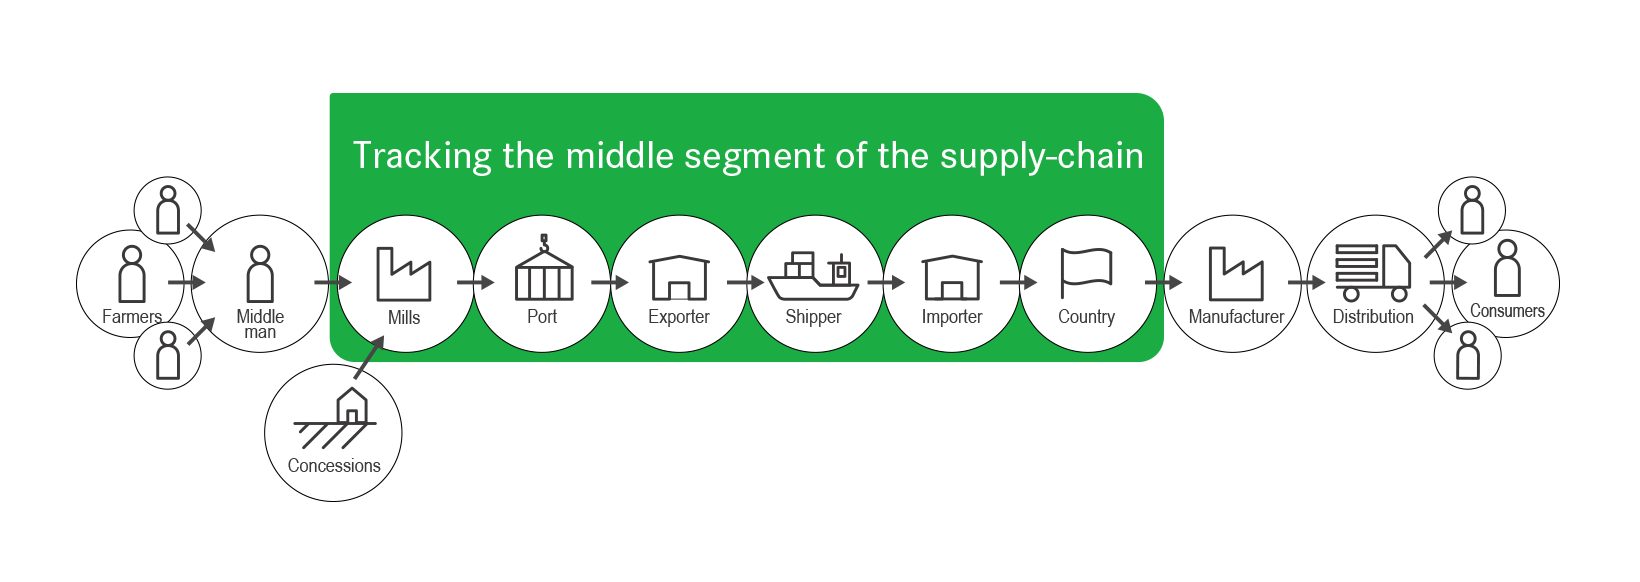 Tracking the middle segment of supply chains as starting point for supply-chain transparency. Source: EFI